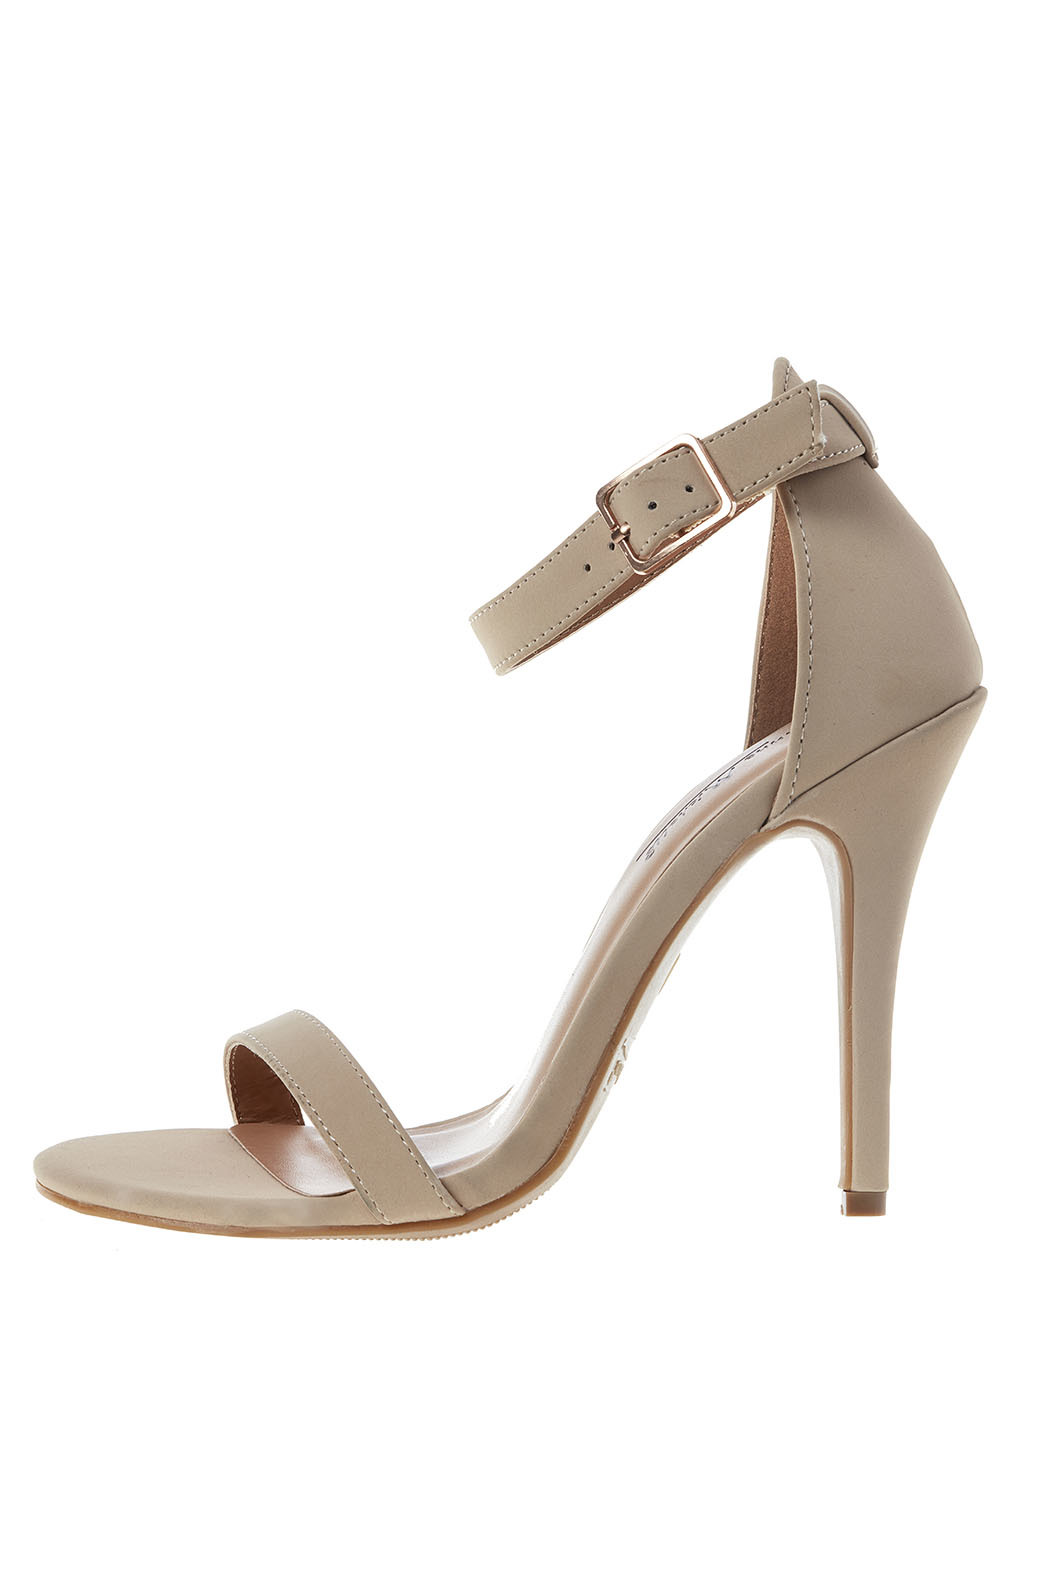 anne michelle Two Strap Heel - Main Image